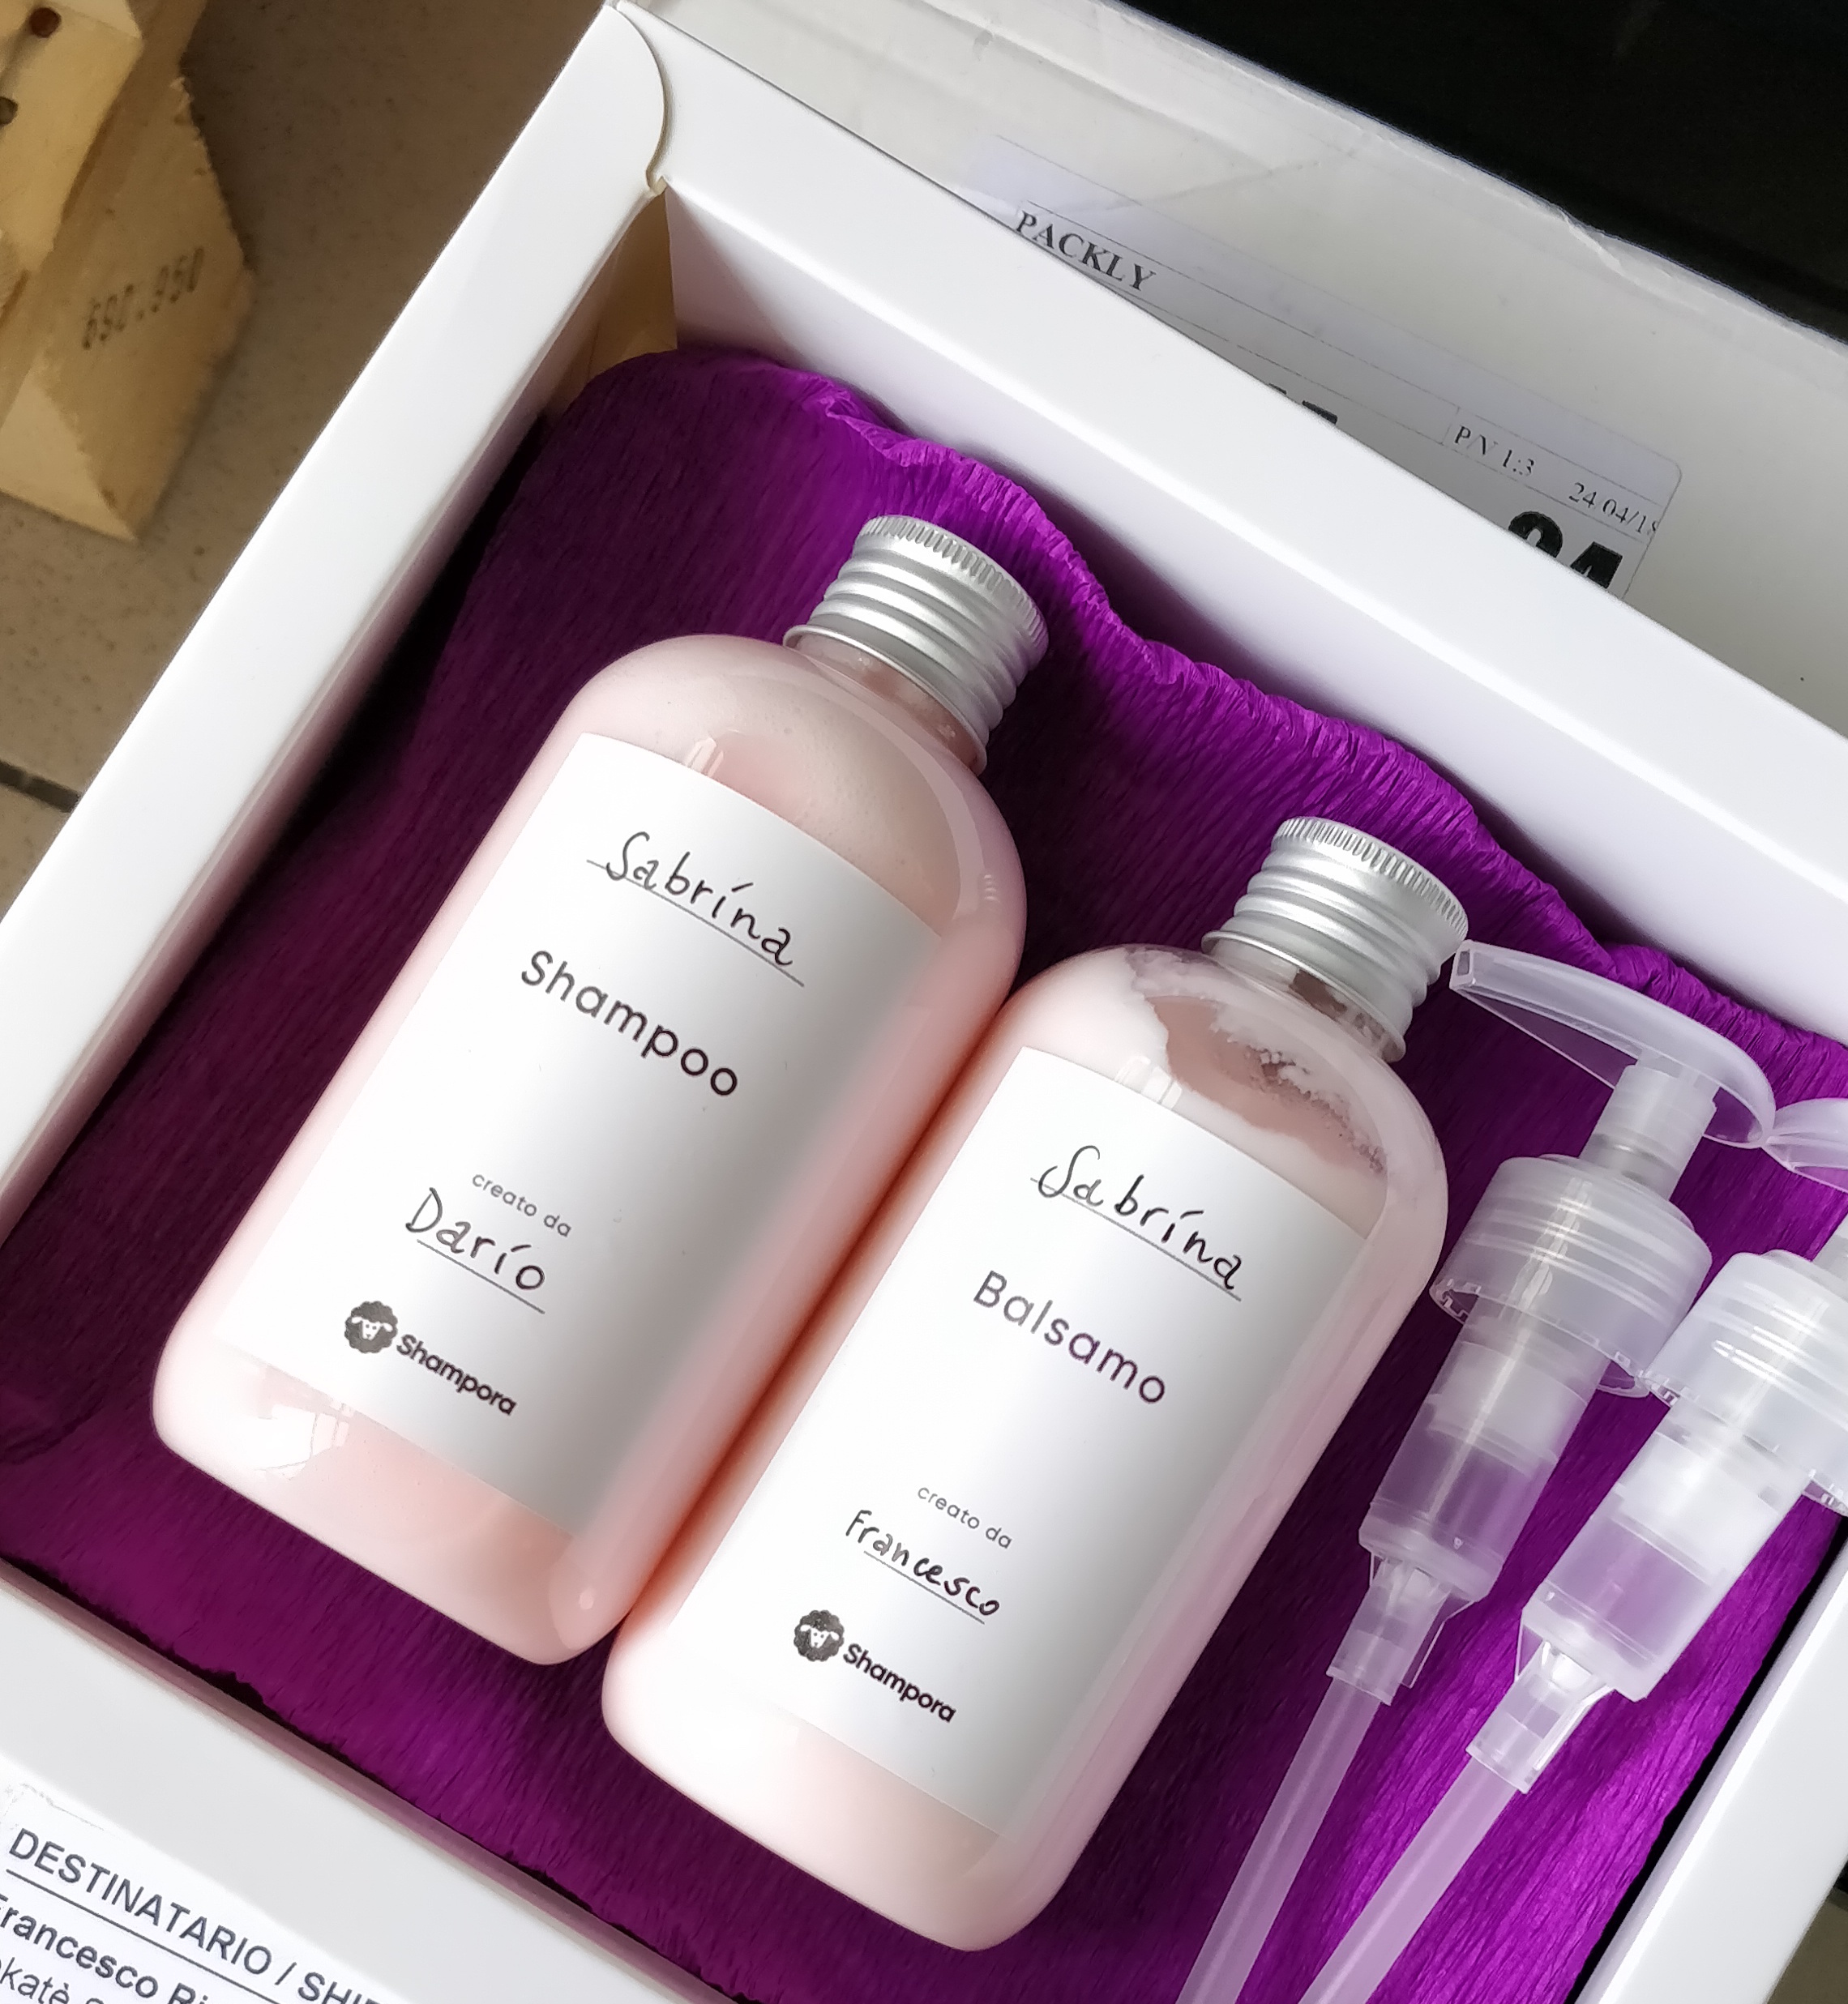 Shampora, startup which creates personalised shampoo